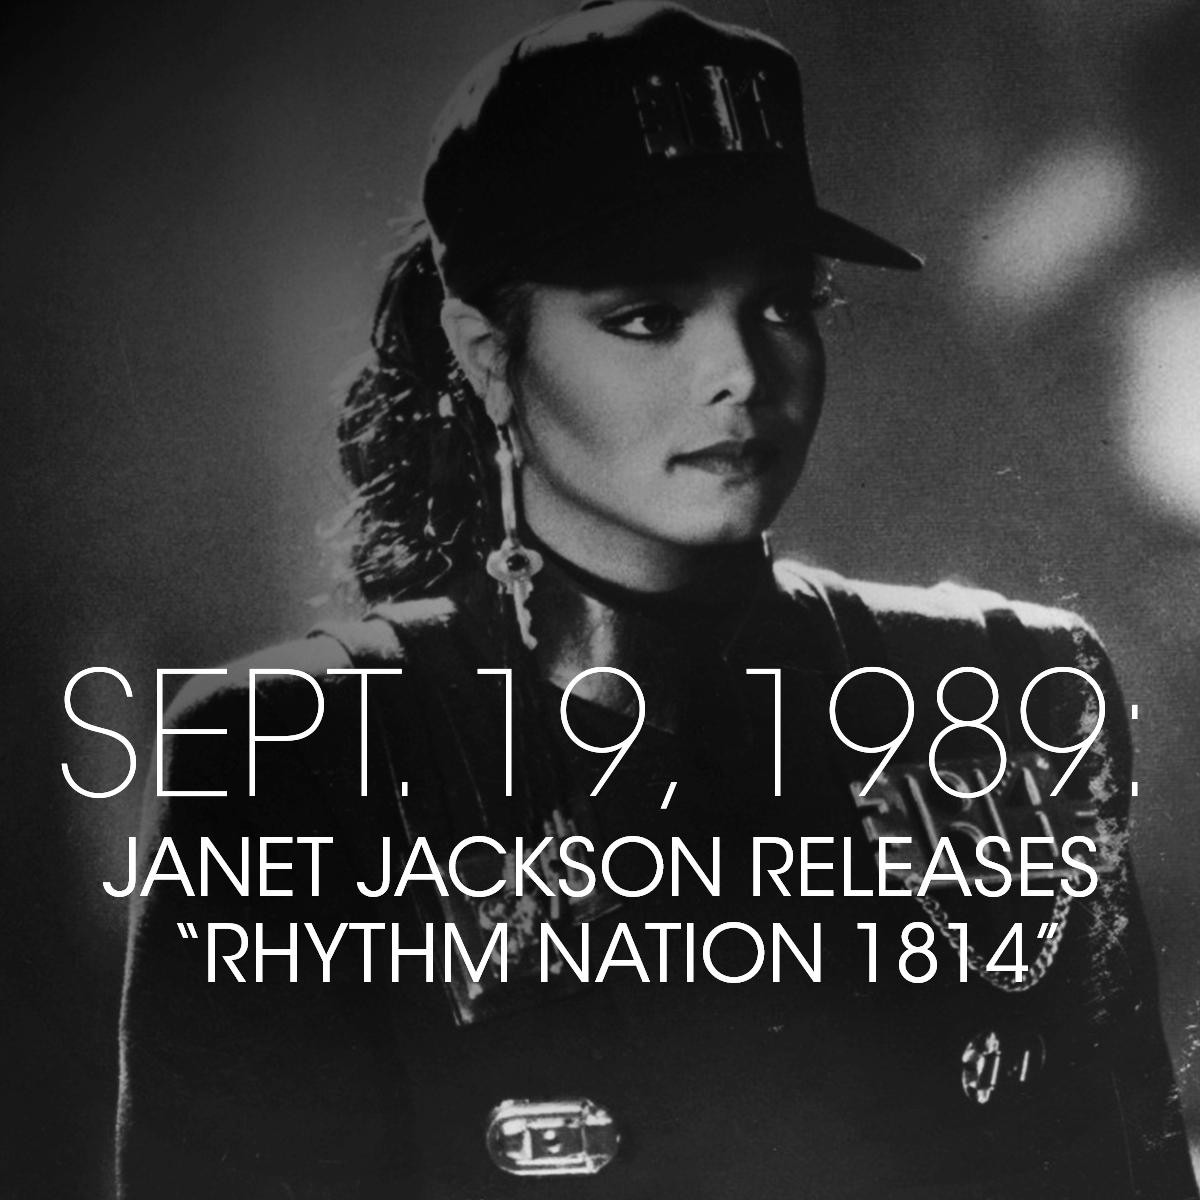 Congratulations and Happy Anniversary to Janet, Terry Lewis and Jimmy Jam @flytetymejam. 30 years of joy from three icons on an album that changed the world.